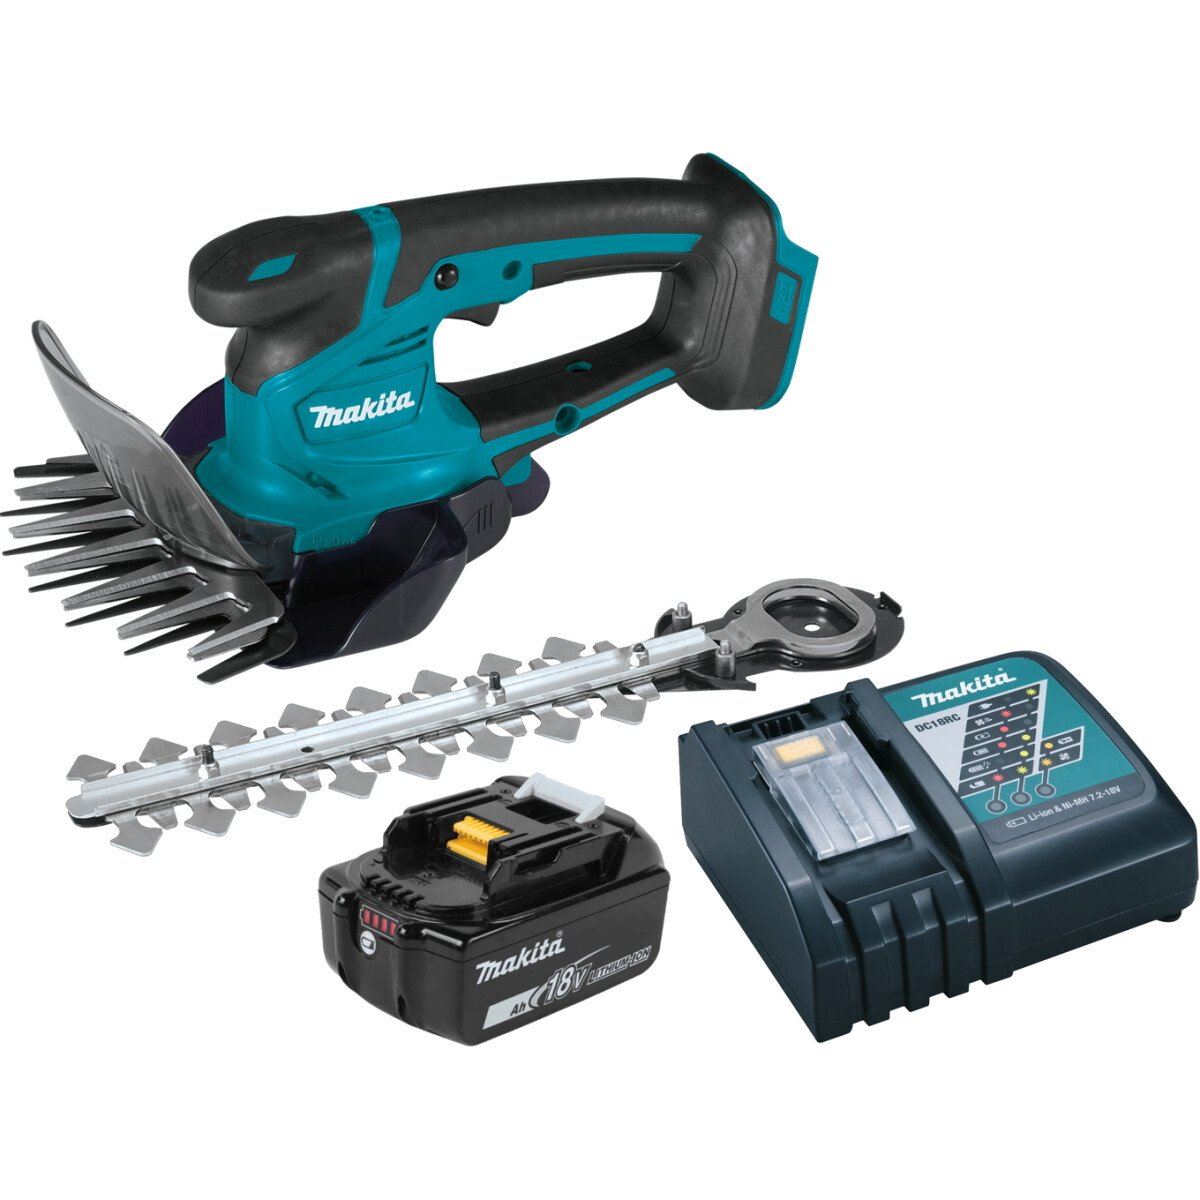 Makita DUM604RTX 18V Grass Shears + Hedge Trimmer Attachment with 1 x 5.0Ah Battery & Charger